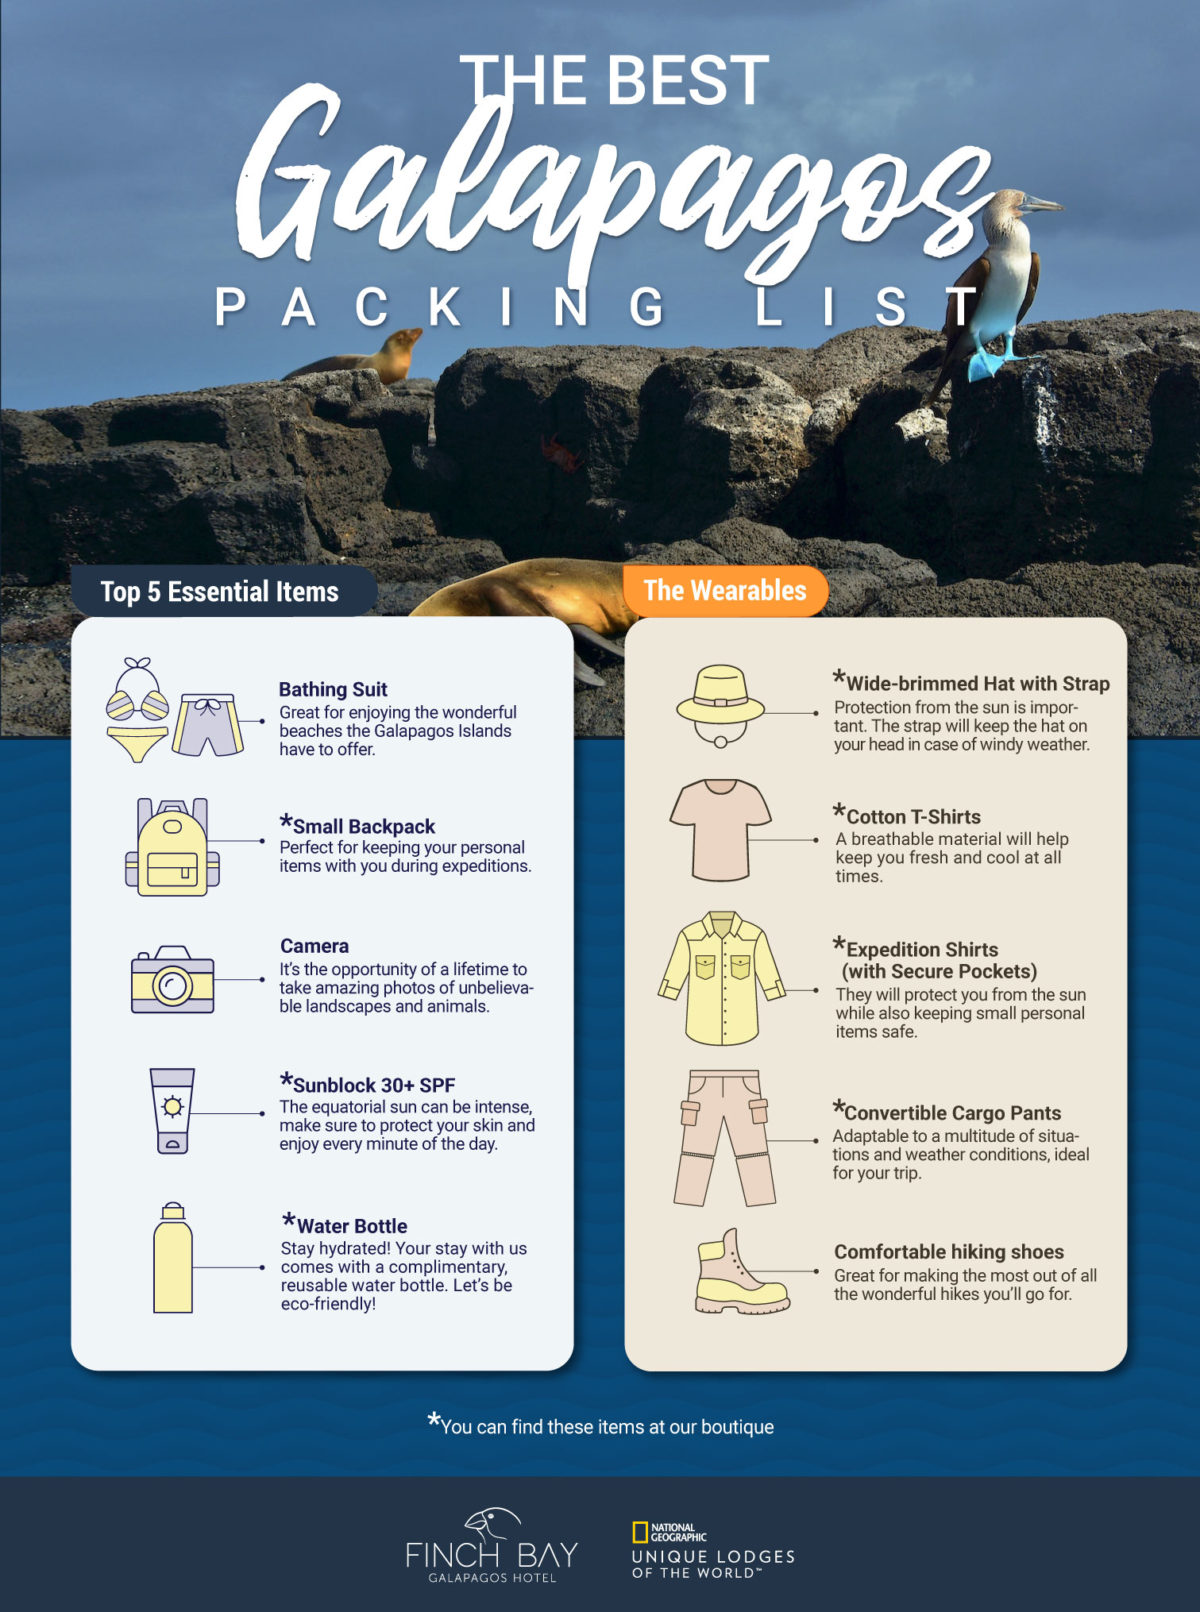 Finch Bay Hotel packing list for the Galapagos Islands